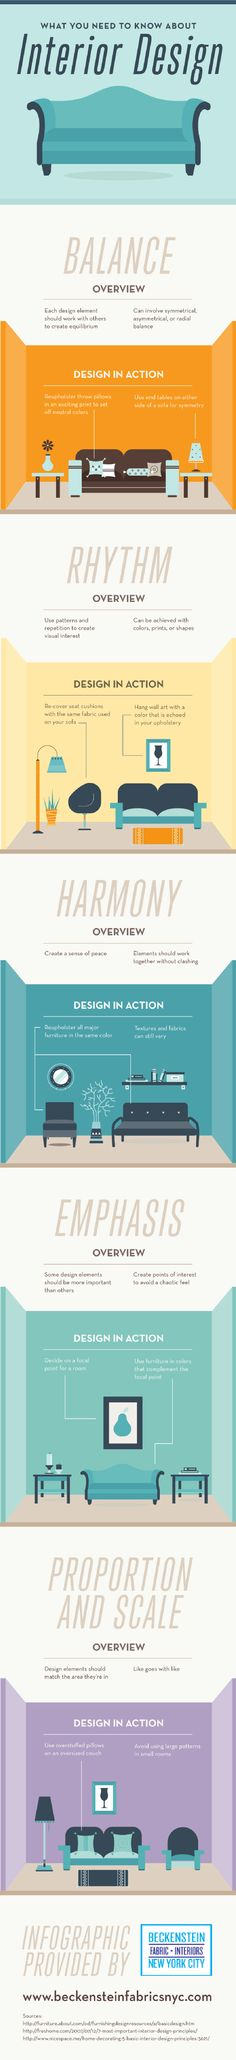 what-you-need-to-know-about-interior-design_5216b54629846